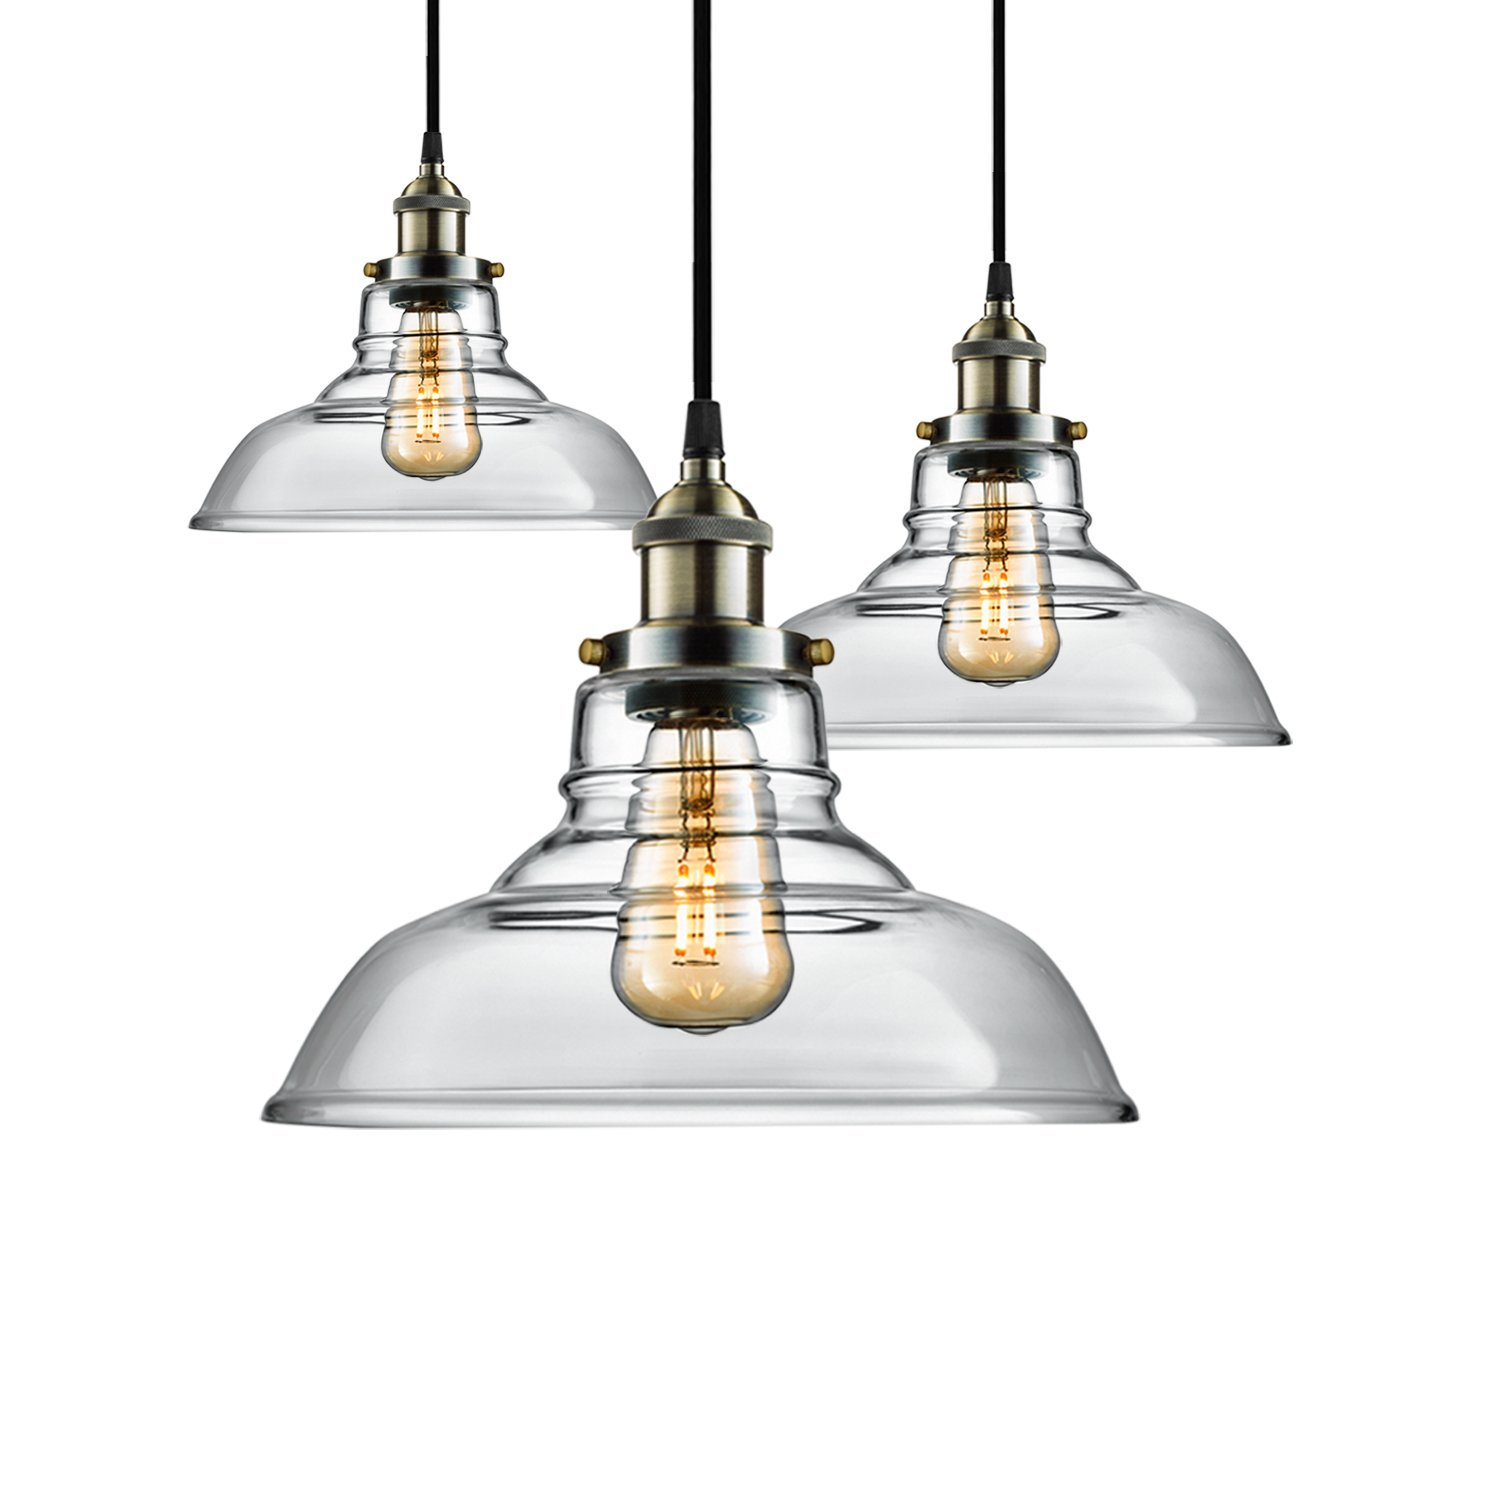 Ceiling Lights & Fans Trend Mark Vintage Pendant Lamps Industrial Loft Bar Bird Decor Hanging Lamp Lamparas Kitchen Birdcage Lamp Chandeliers With Iron Lampshade